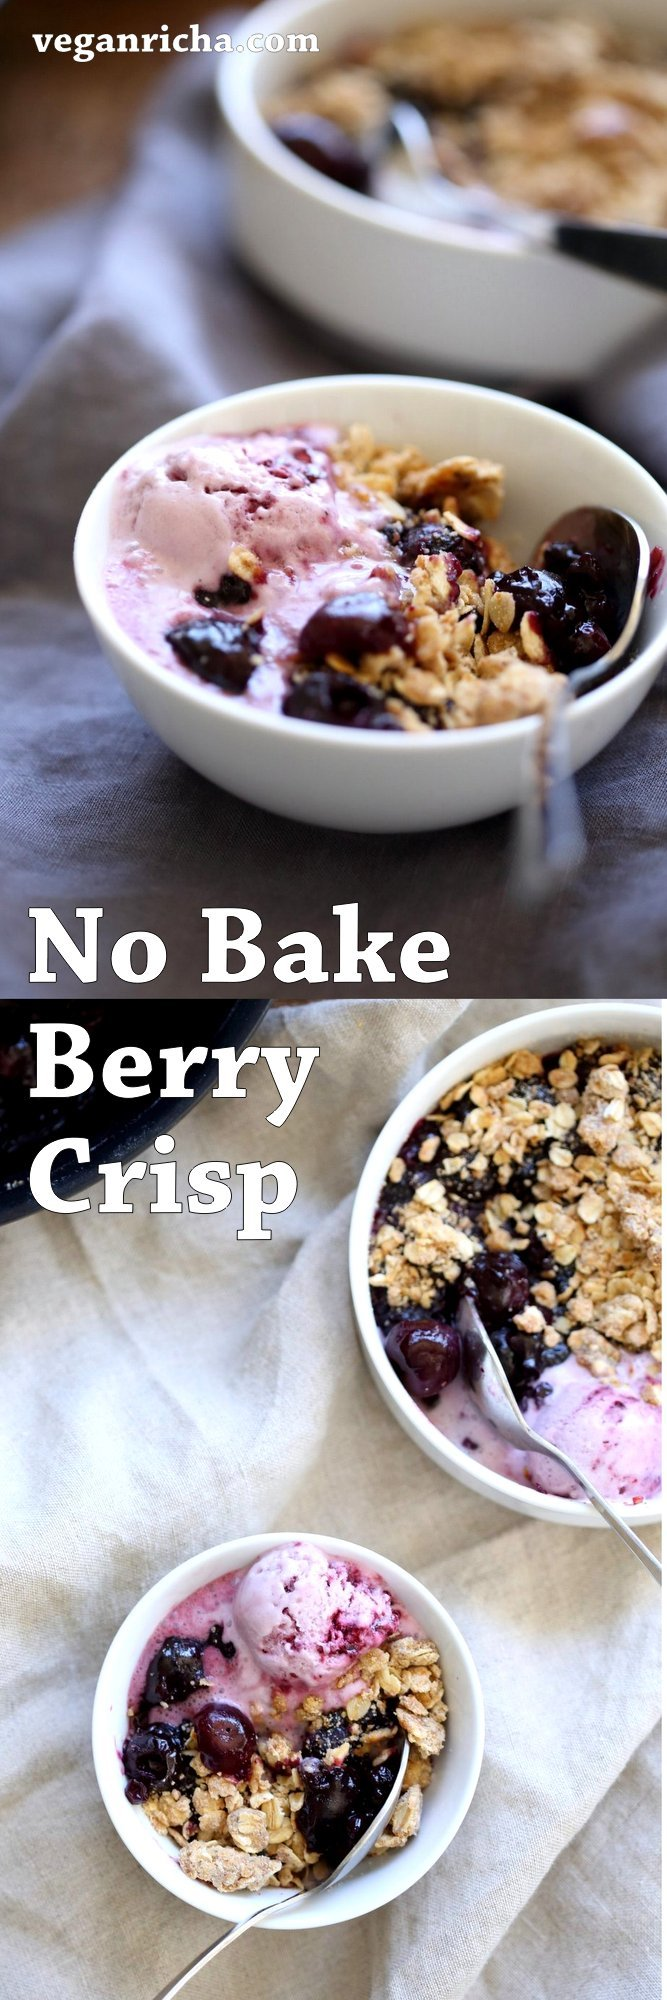 No Bake Vegan Cherry Blueberry Crisp. 20 Minute 1 Pot Berry Crisp. Seasonal Berries cooked to a compote and topped with Toasted Crisp Oat crumble. Serve with favorite ice cream. Vegan Recipe. Can be gluten-free, nut-free   VeganRicha.com